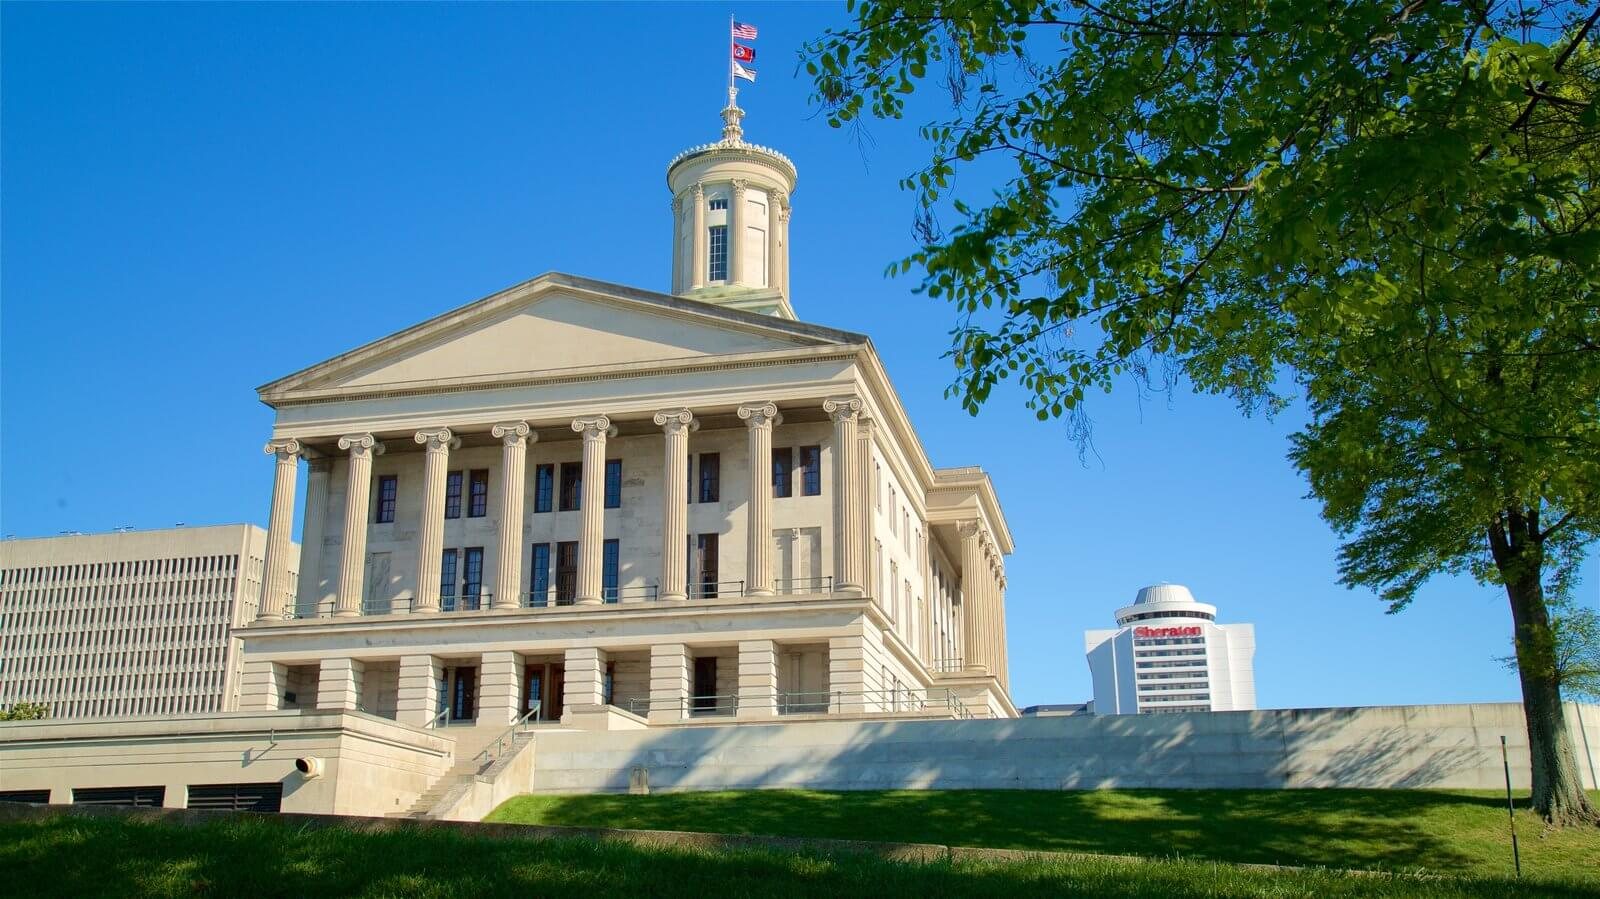 Tennessee State Capitol Things to do in Nashville